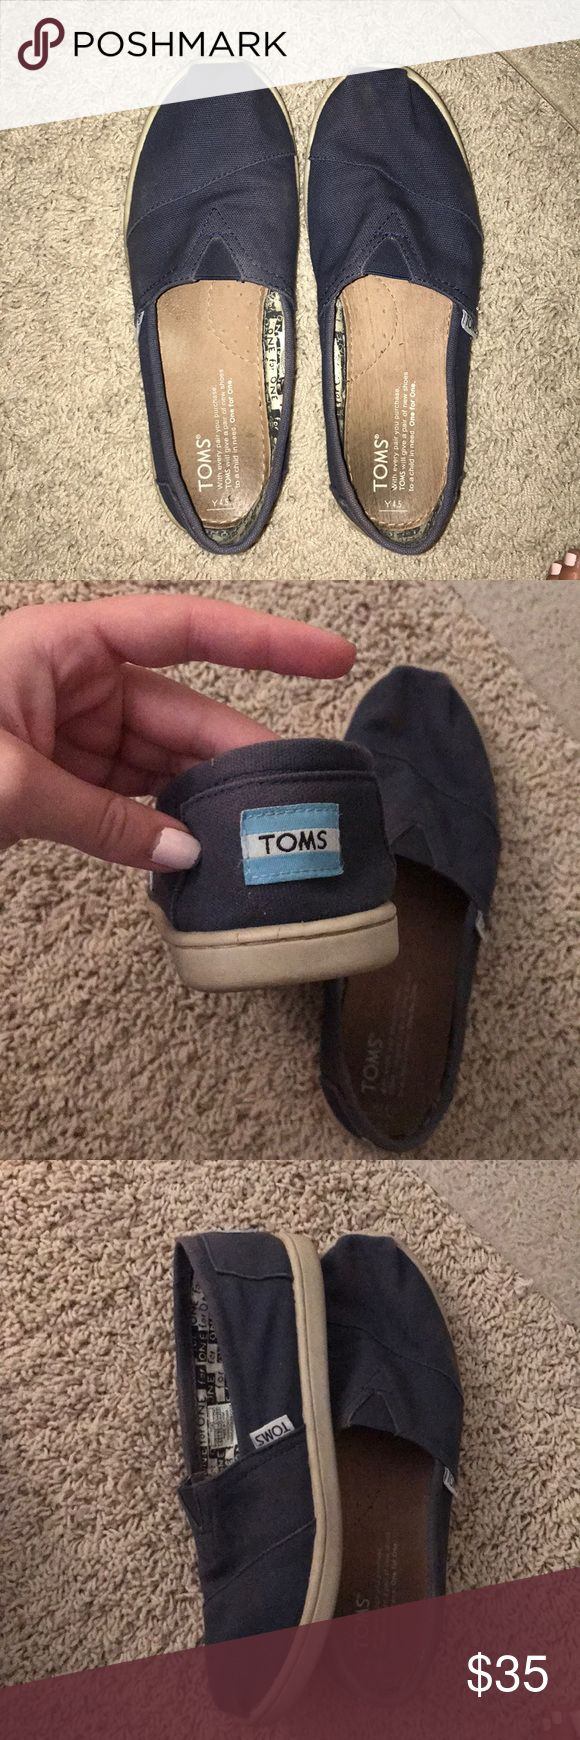 Navy blue toms Good condition and very comfortable Toms Shoes Sandals & Flip Flops